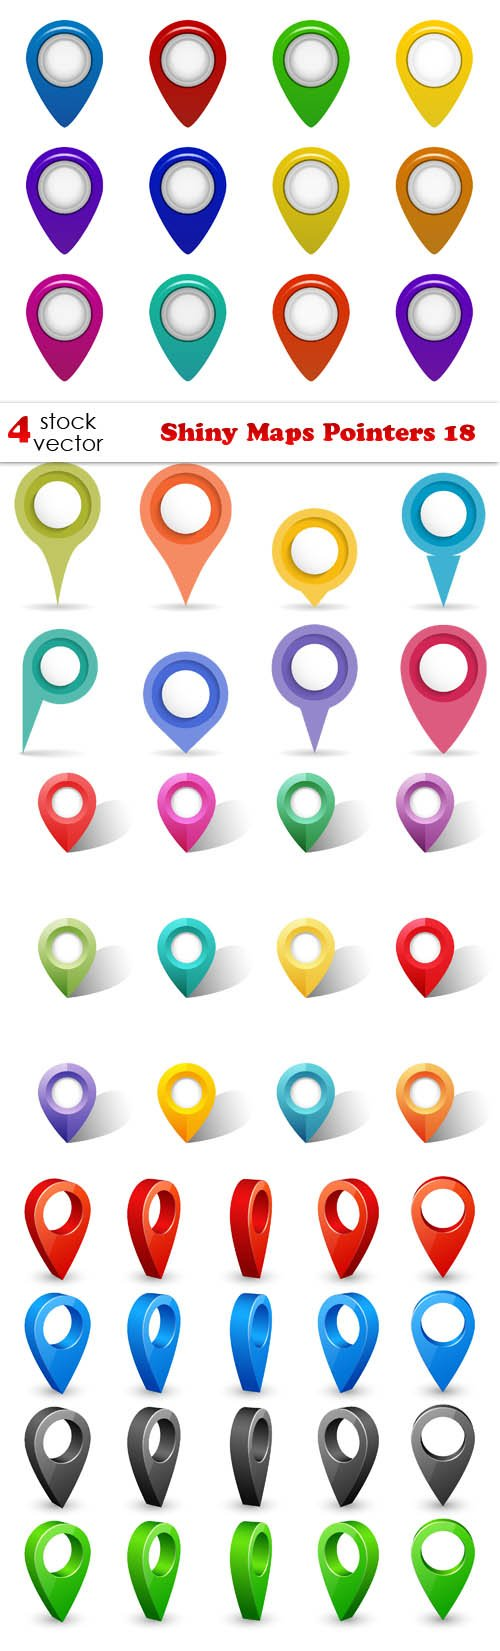 Vectors - Shiny Maps Pointers 18